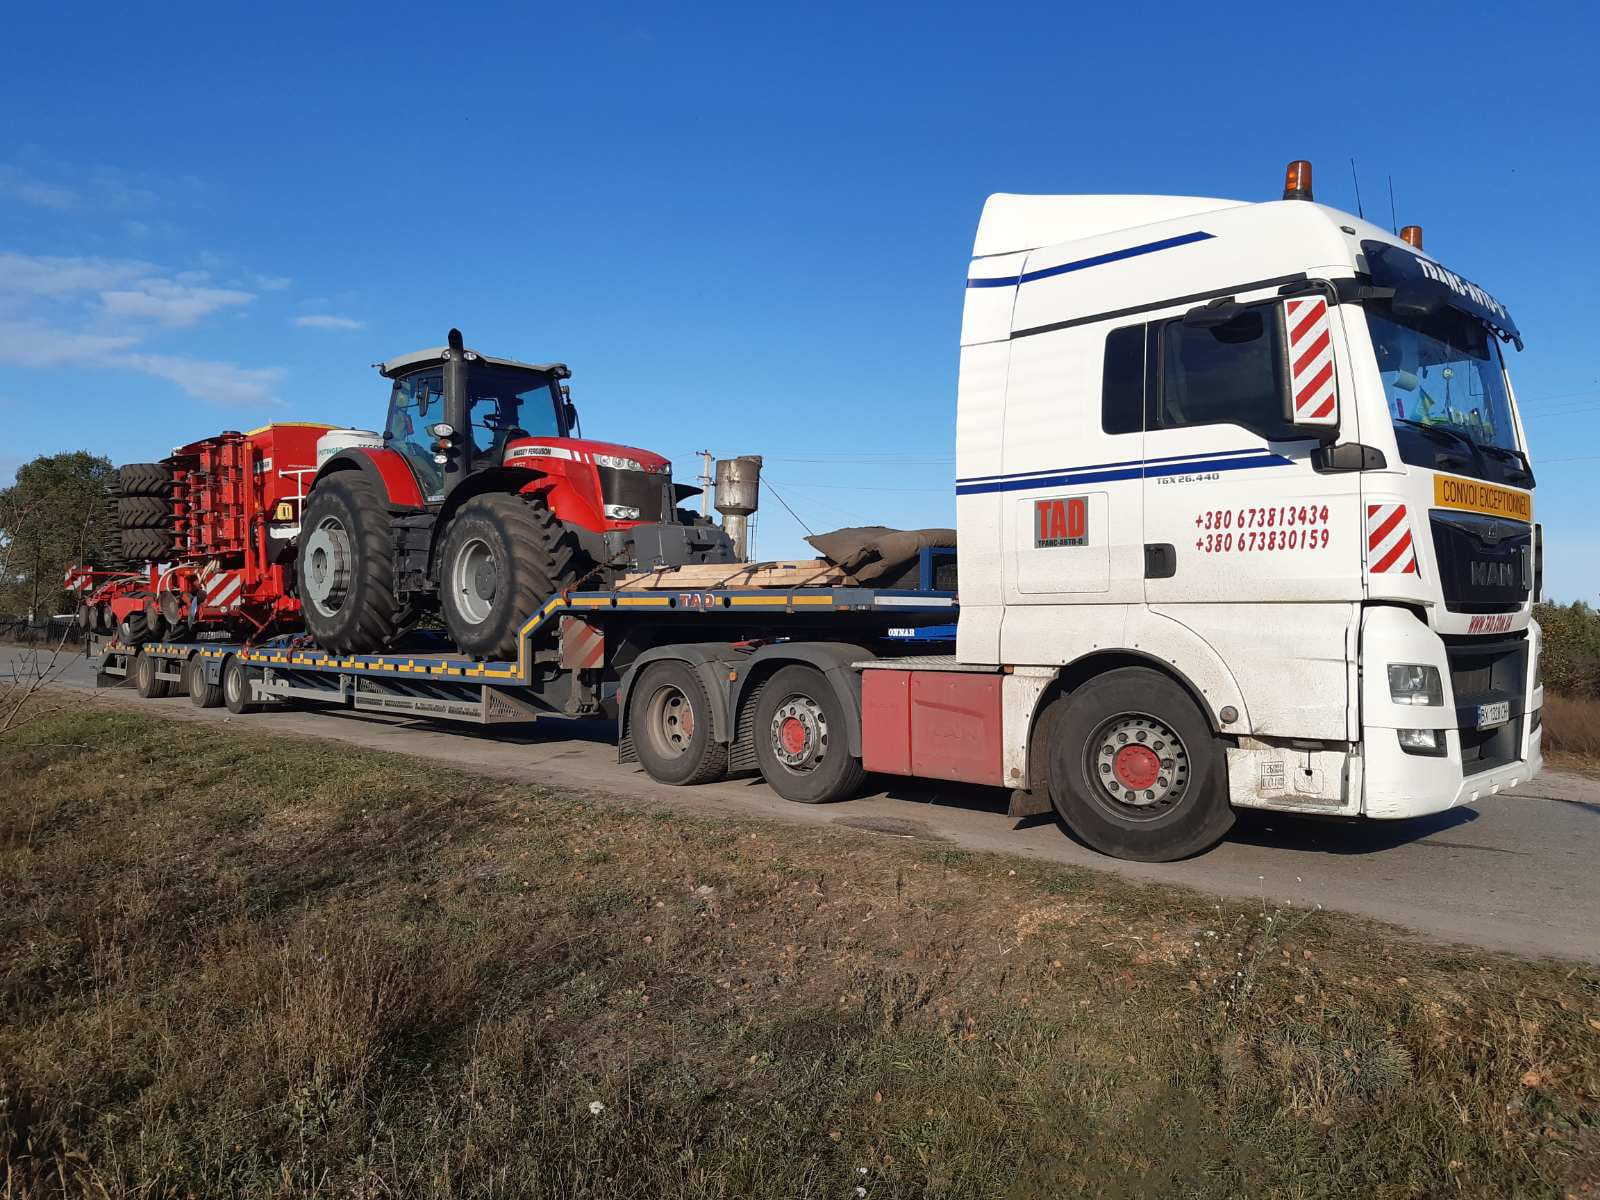 Transportation of a Massey Ferguson 8737 tractor and a Pottinger Terrasem C6